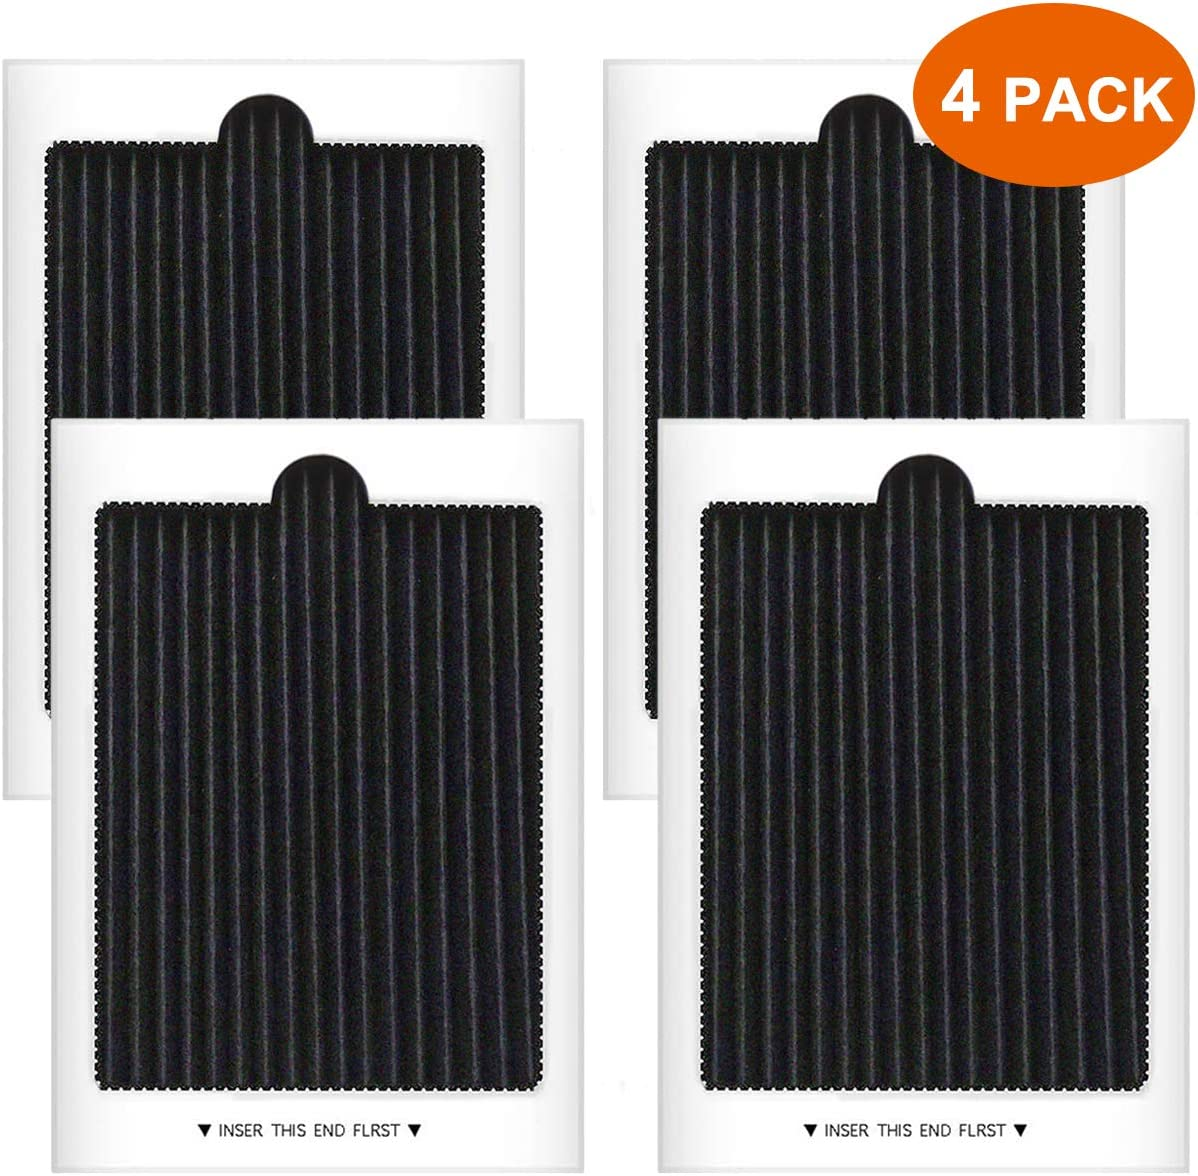 Refrigerator Air Filter Replacement Compatible with Frigidaire PAULTRA, SCPUREAIR2PK, Electrolux EAFCBF (4 PCS)